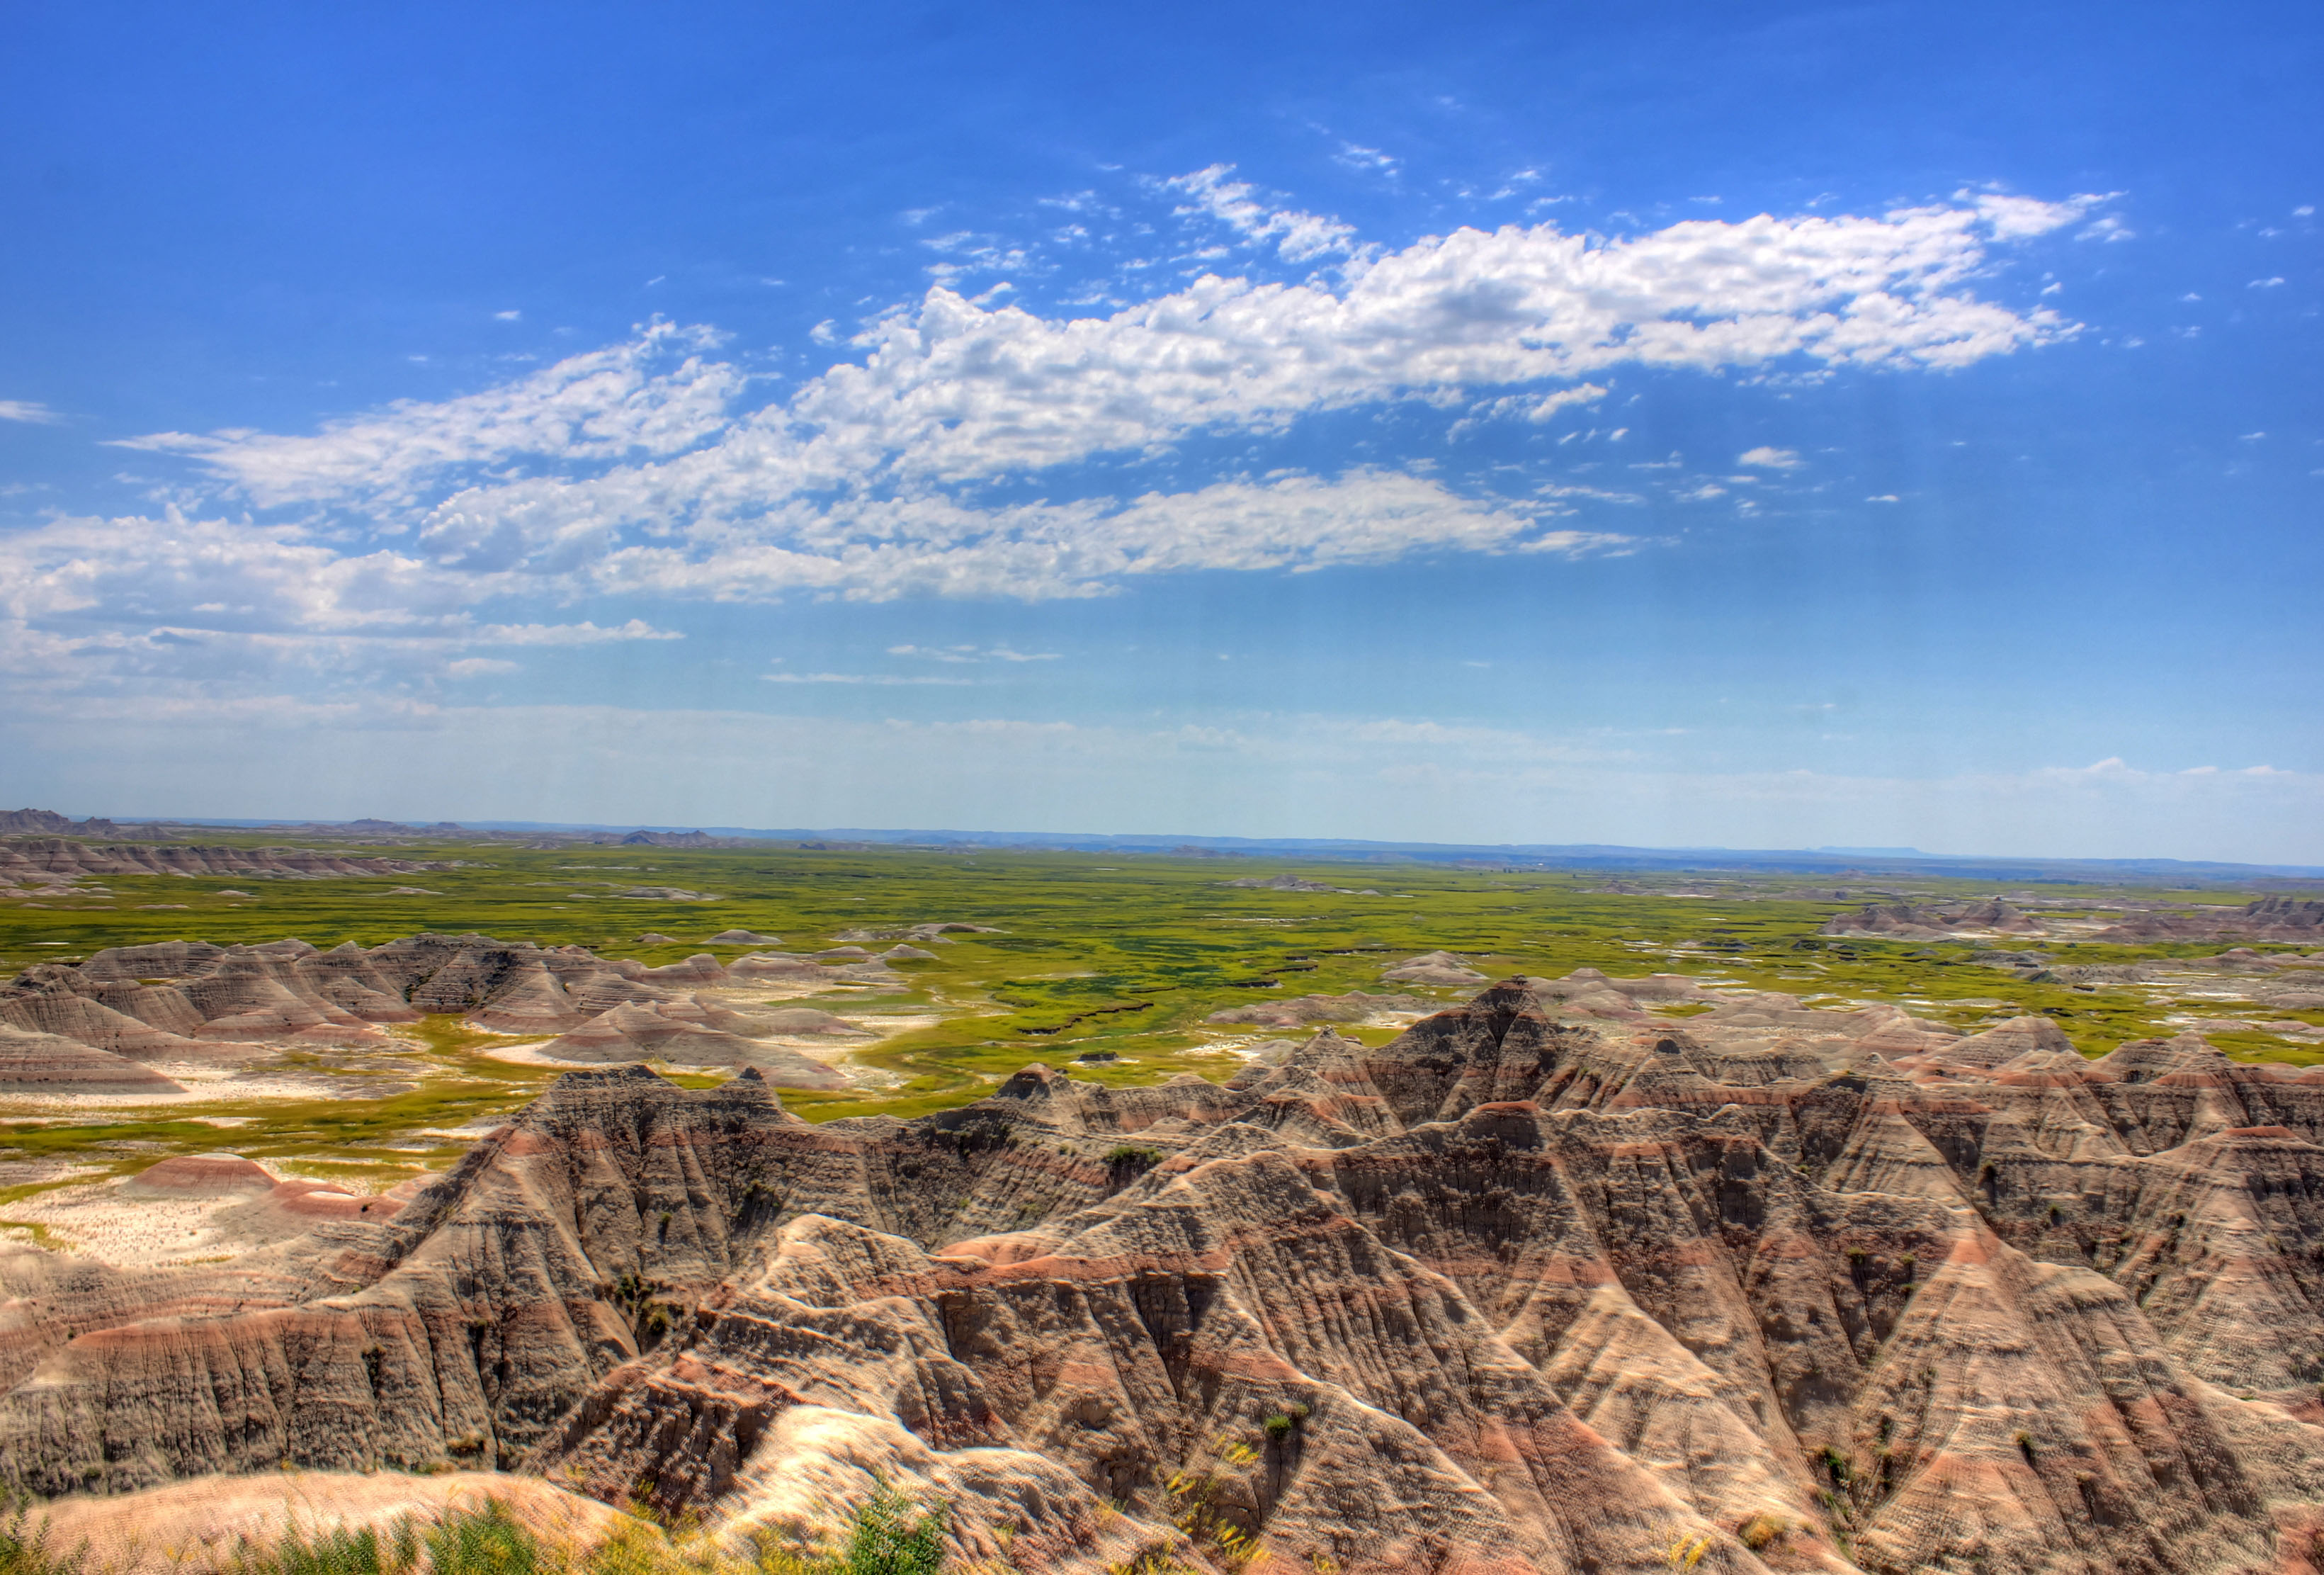 Buttes under clouds and skies at Badlands National Park, South.